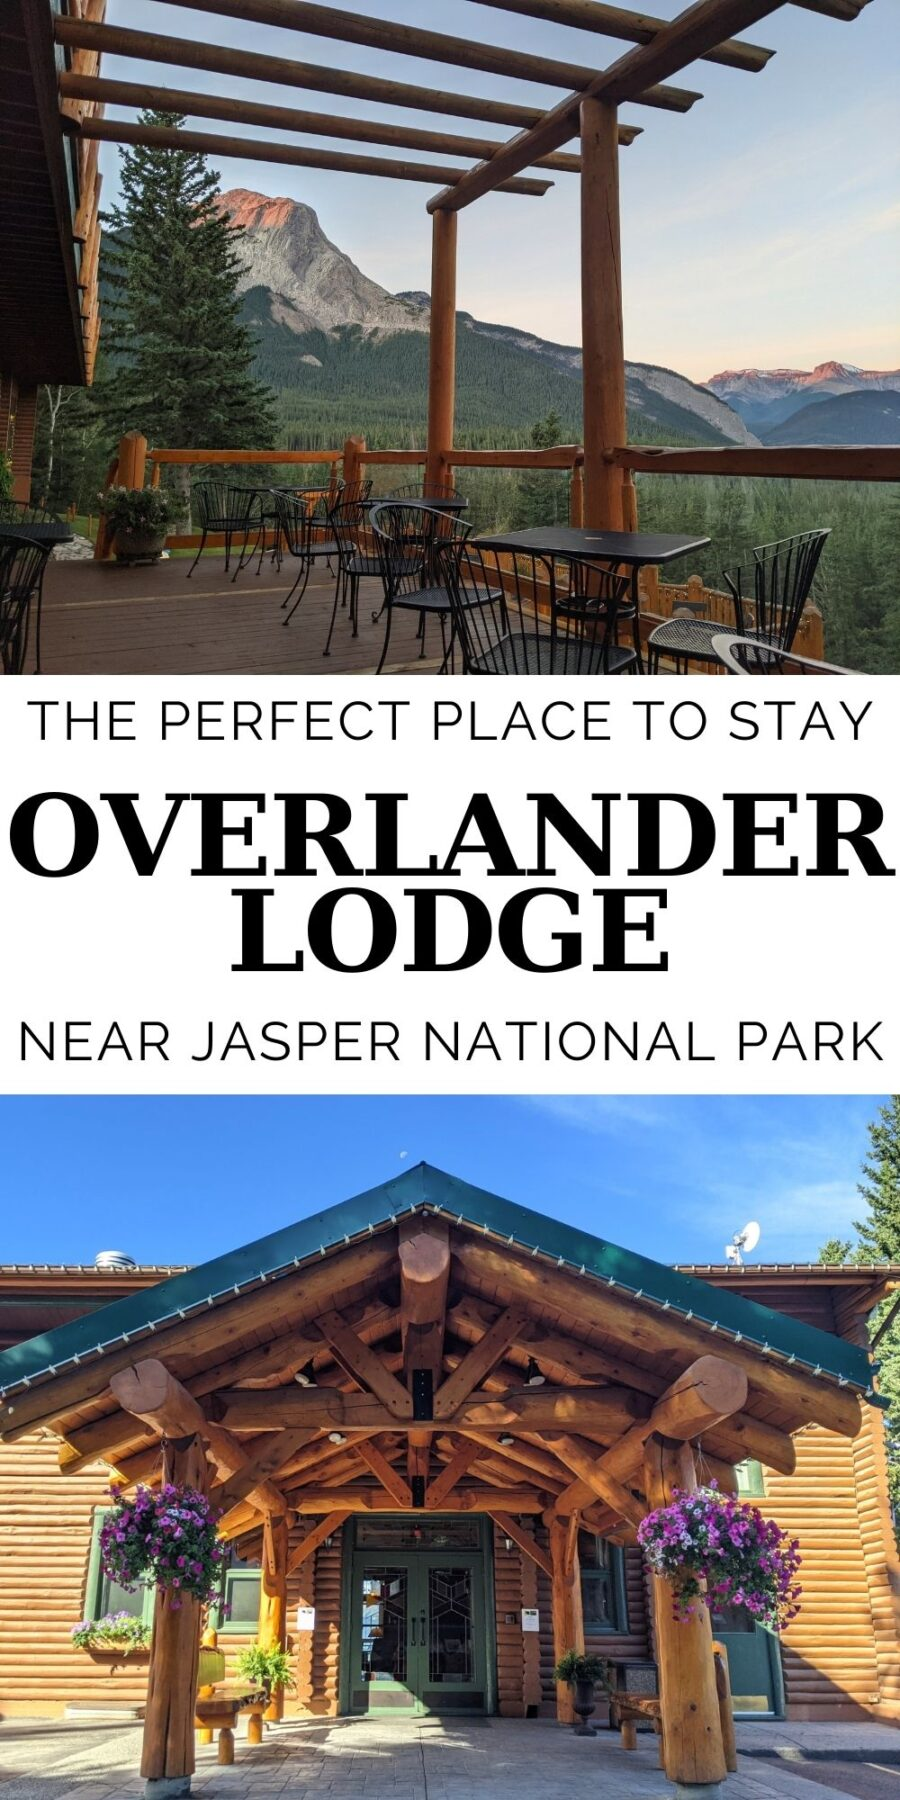 The Overlander Mountain Lodge sits just two minutes drive from the east entrance gates of Jasper National Park. It's the perfect base from which to explore one of Canada's most spectacular natural areas. But this convenient location is only the first of many reasons to stay at the Overlander. Read on to discover more about the Overlander Mountain Lodge and why you should be planning a trip there ASAP! offtracktravel.ca